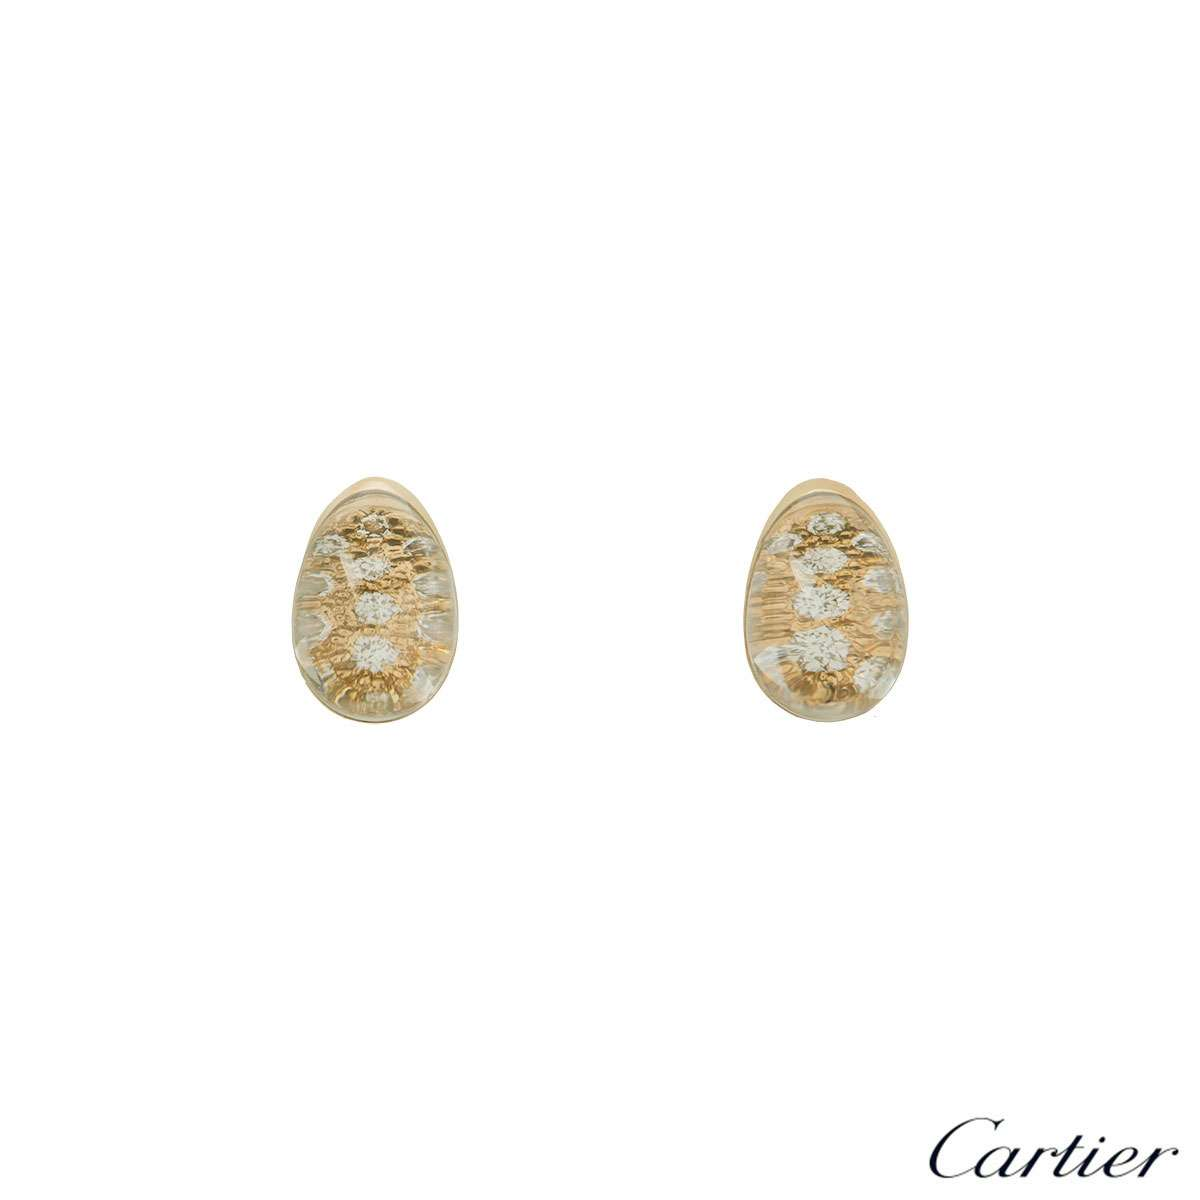 Cartier Yellow Gold Myst Rock Crystal Diamond Earrings CRN8021900